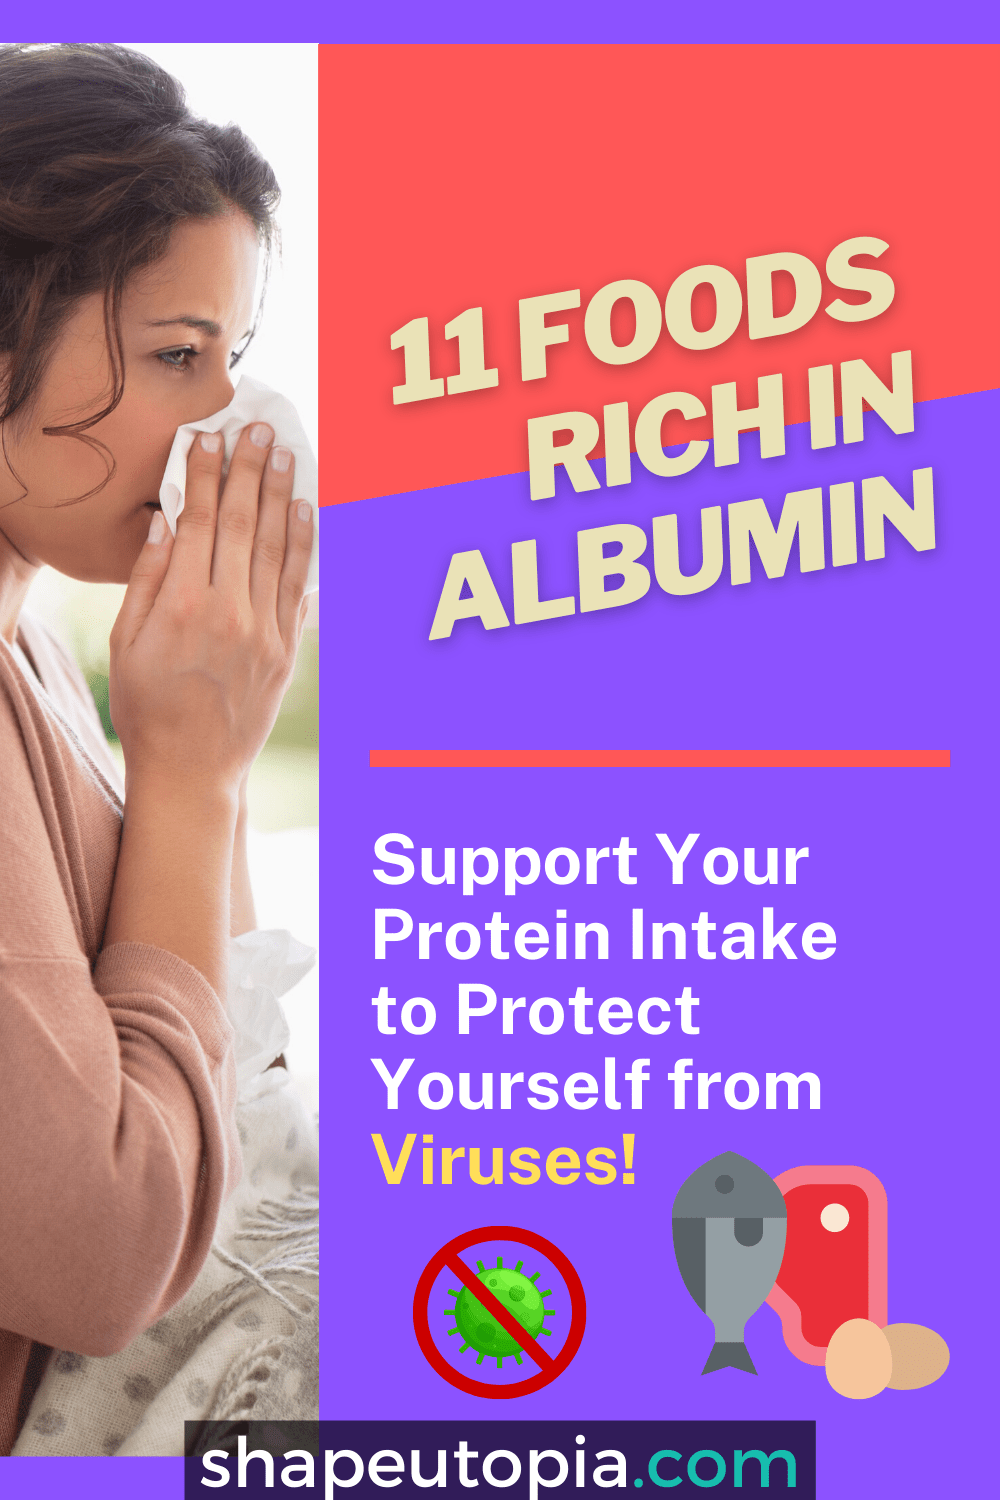 11 Foods Rich in Albumin